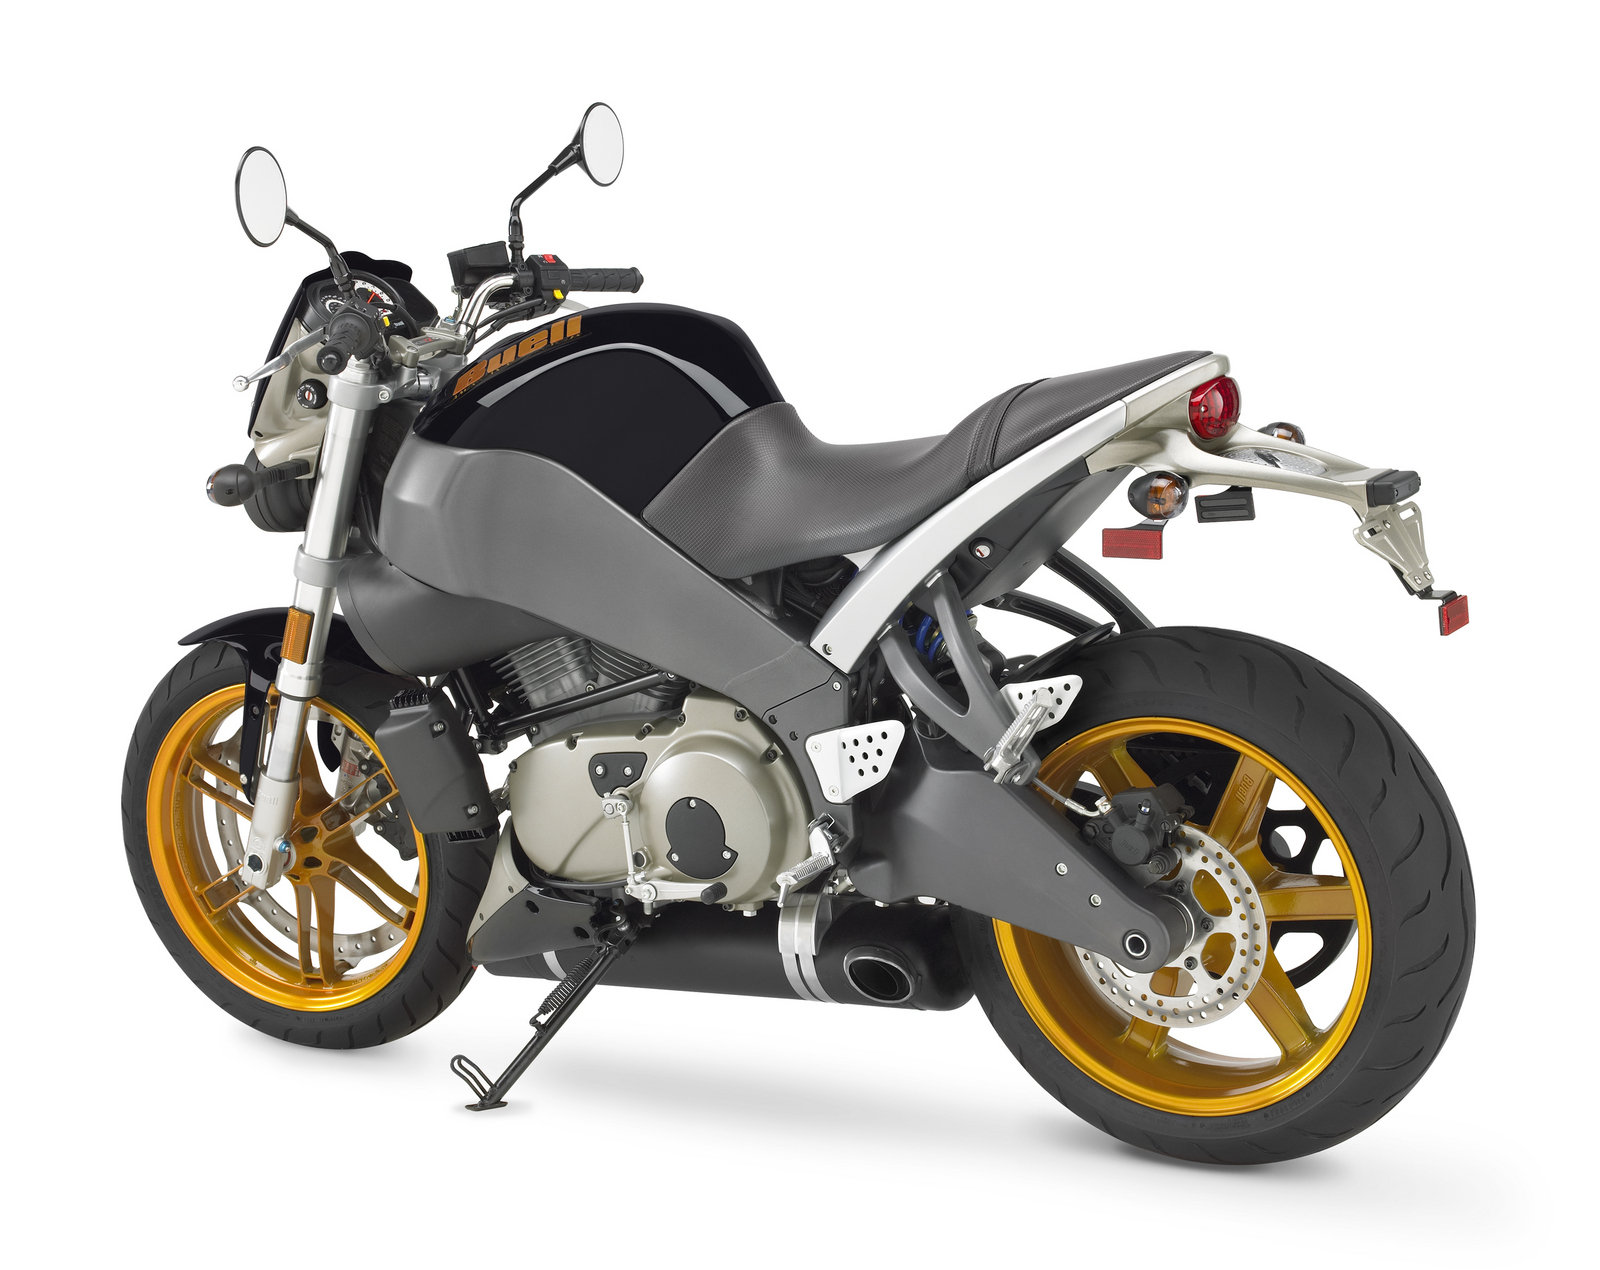 2006 buell xb 12s   Cool bikes, Buell motorcycles, Street